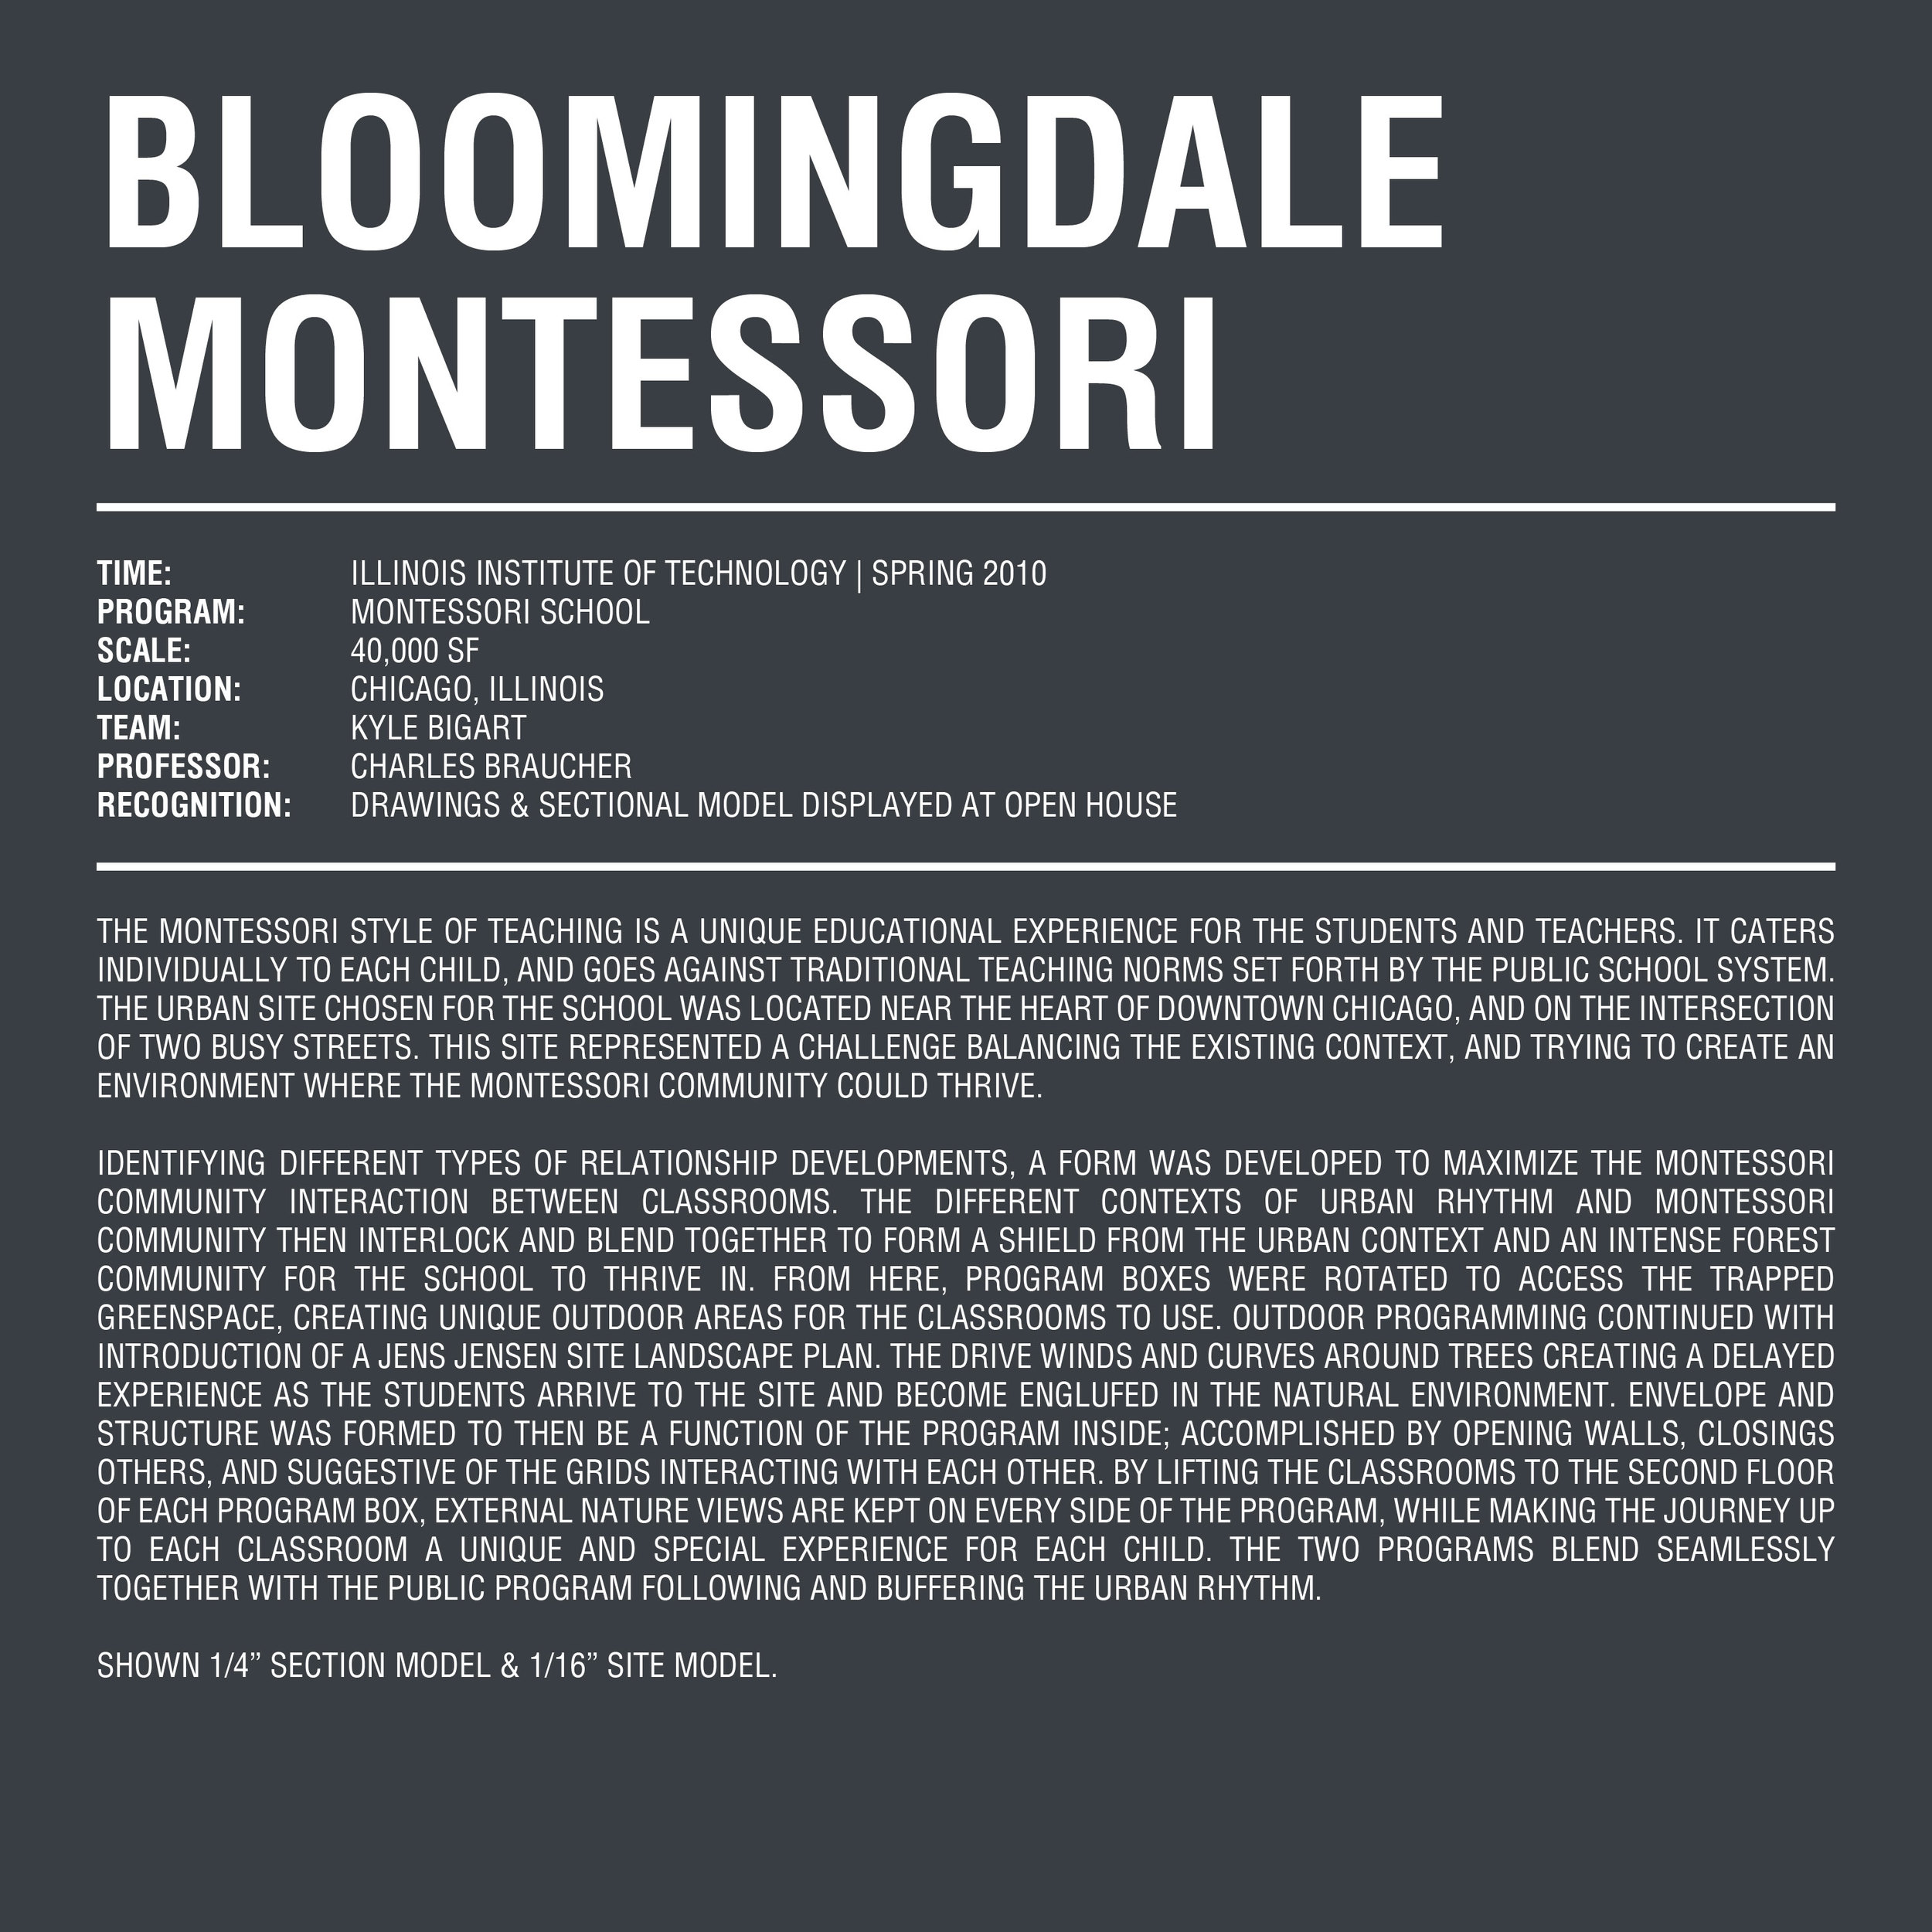 _MASTER-TITLE PAGES_BLOOMINGDALE MONTESSORI.jpg